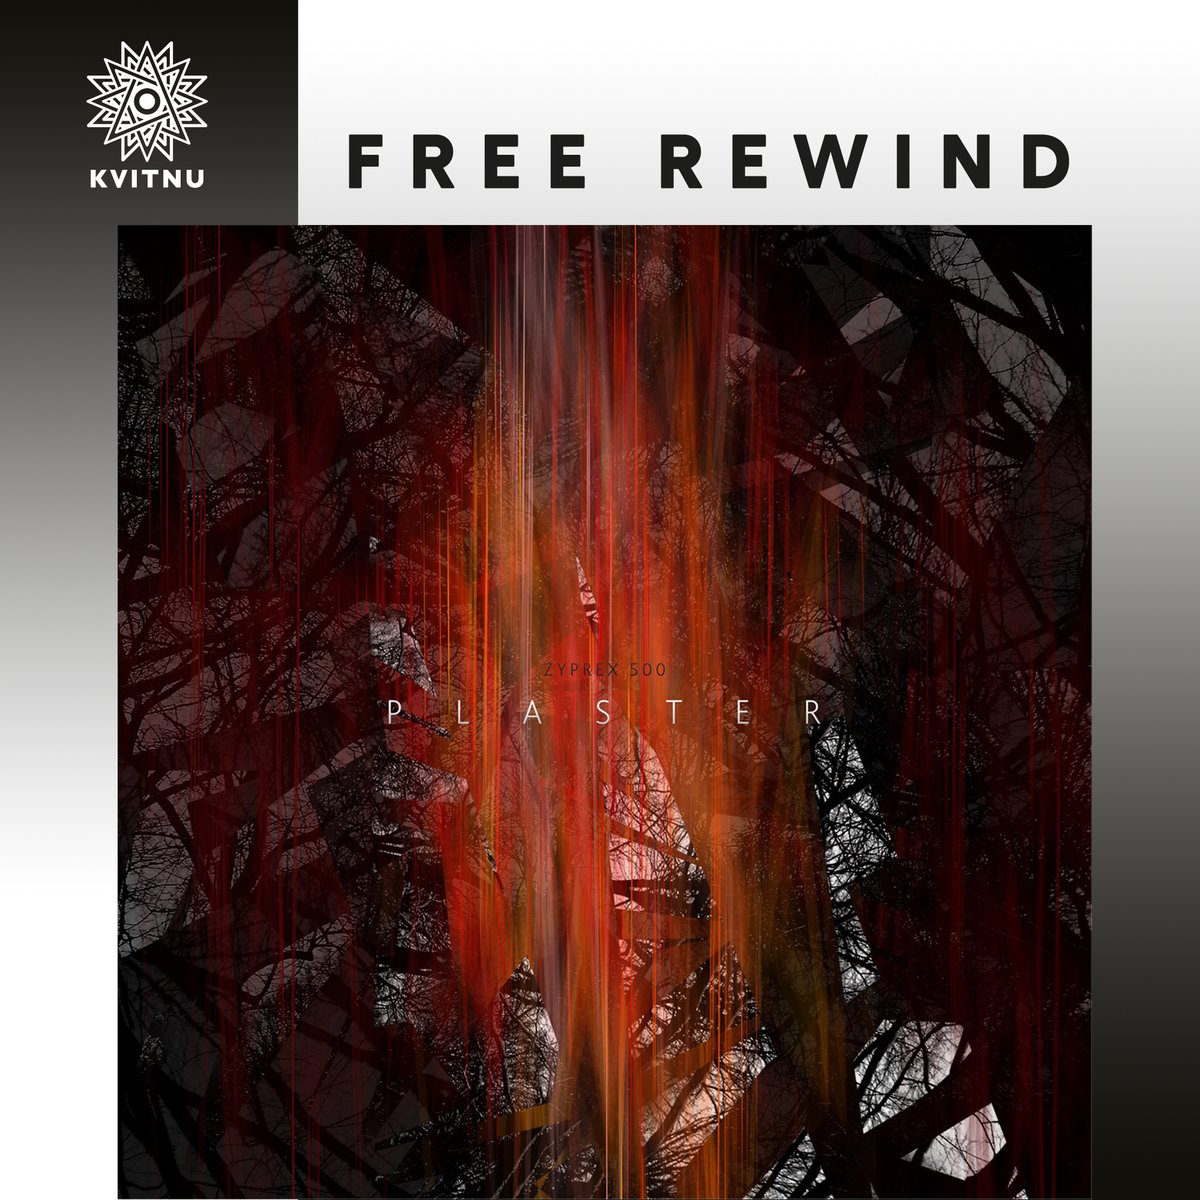 """It's time for a very special release in FREE REWIND  PLASTER """"ZYPREX 500"""" https://kvitnu.bandcamp.com/album/zyprex-500…  Zyprex 500 is true psychedelic music, complex, intense, organic, innovative and unique.   Go, click """"Name Your Price"""" and get this album!  #kvitnu   @plastersoundpic.twitter.com/WRo2plo1vP"""